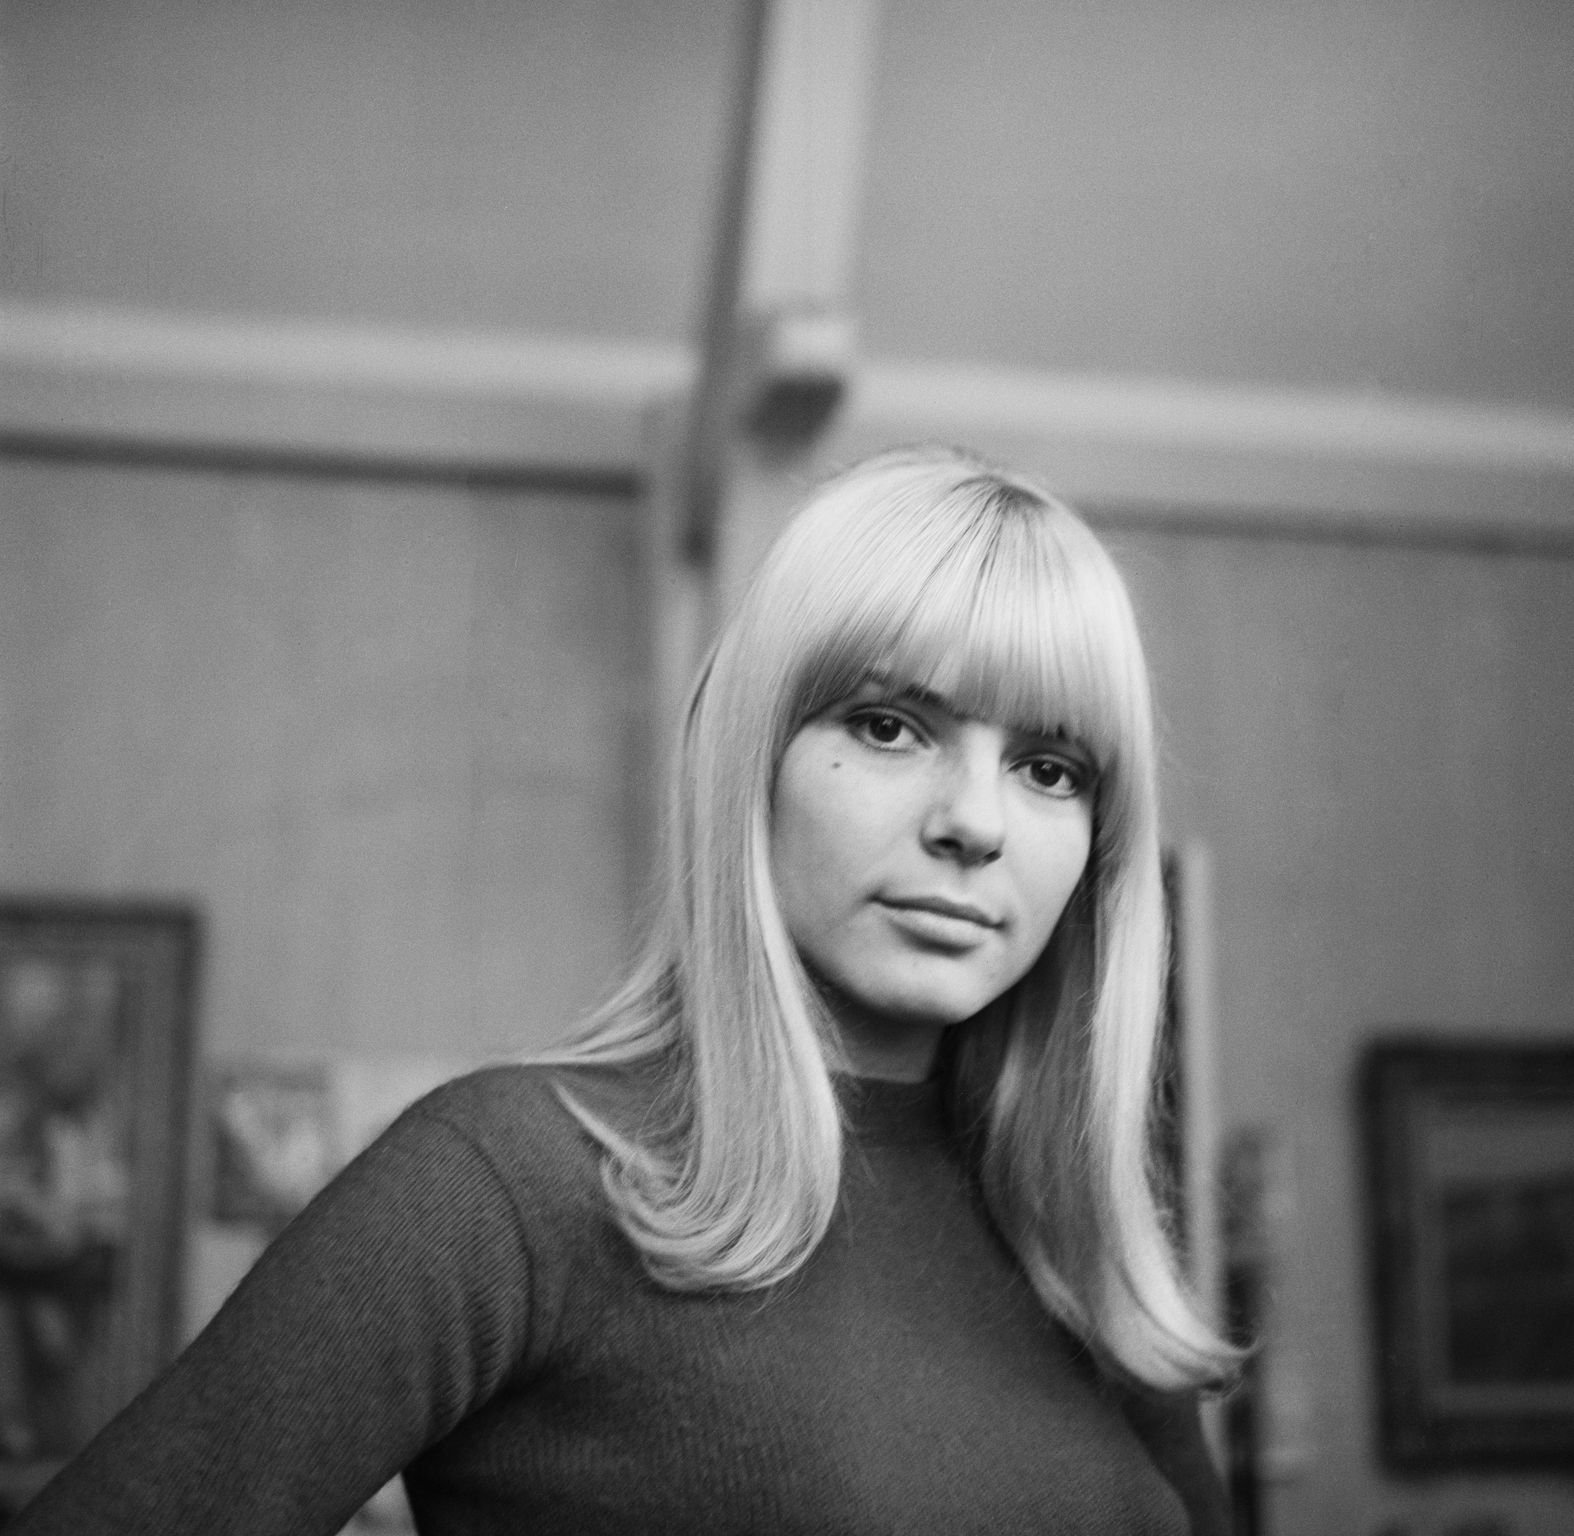 L'inoubliable France Gall. l Source : Getty Images